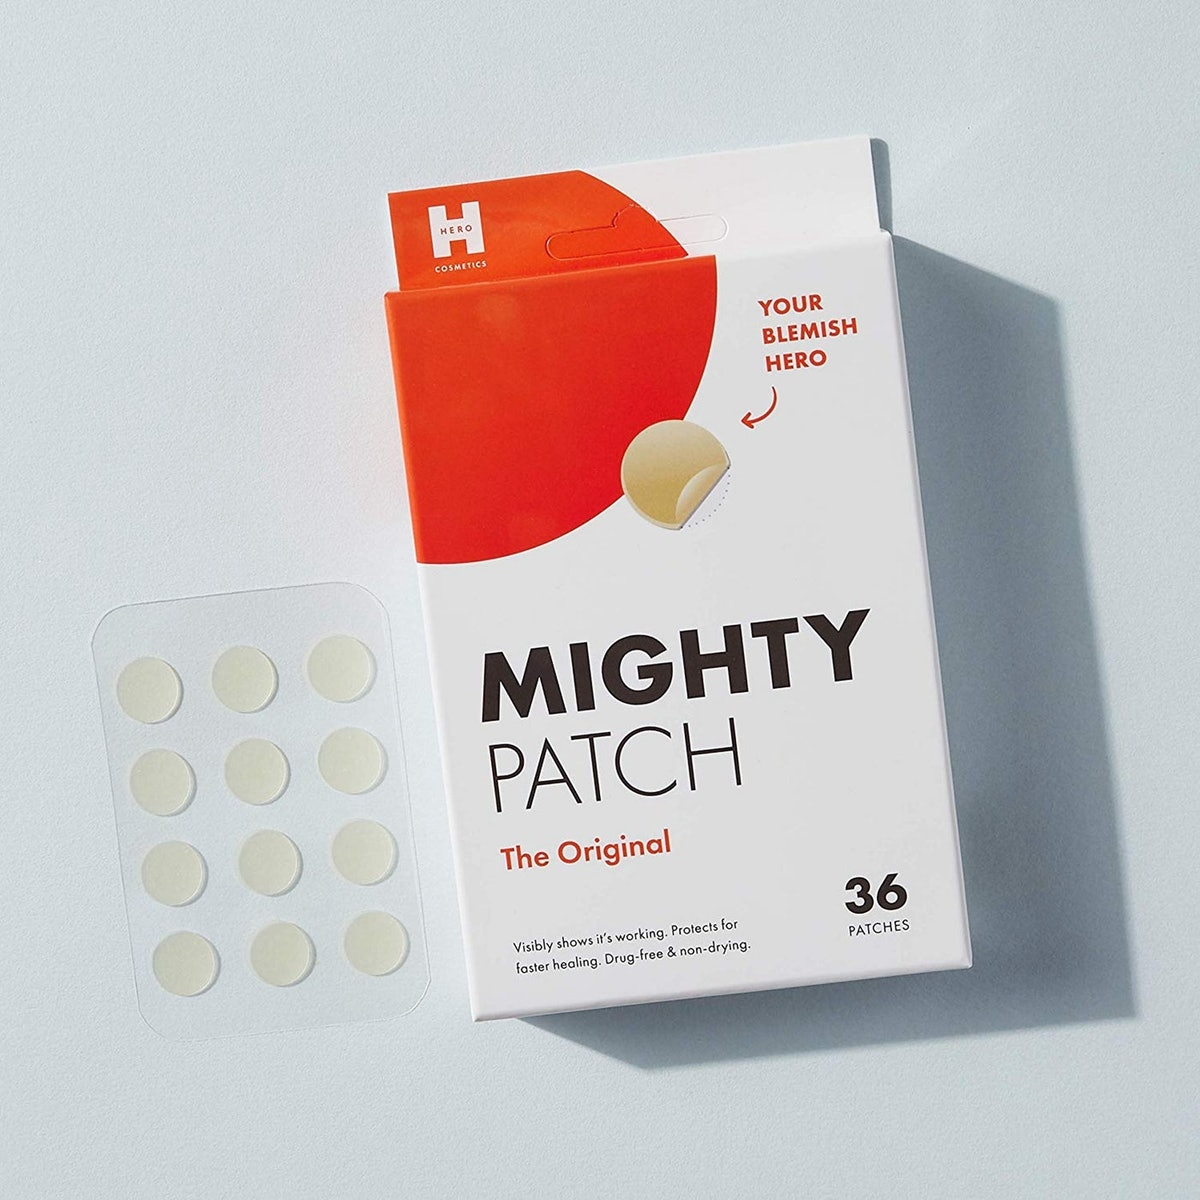 Mighty Patch Original Hydrocolloid Acne Pimple Patch Spot Treatment (36-Pack)